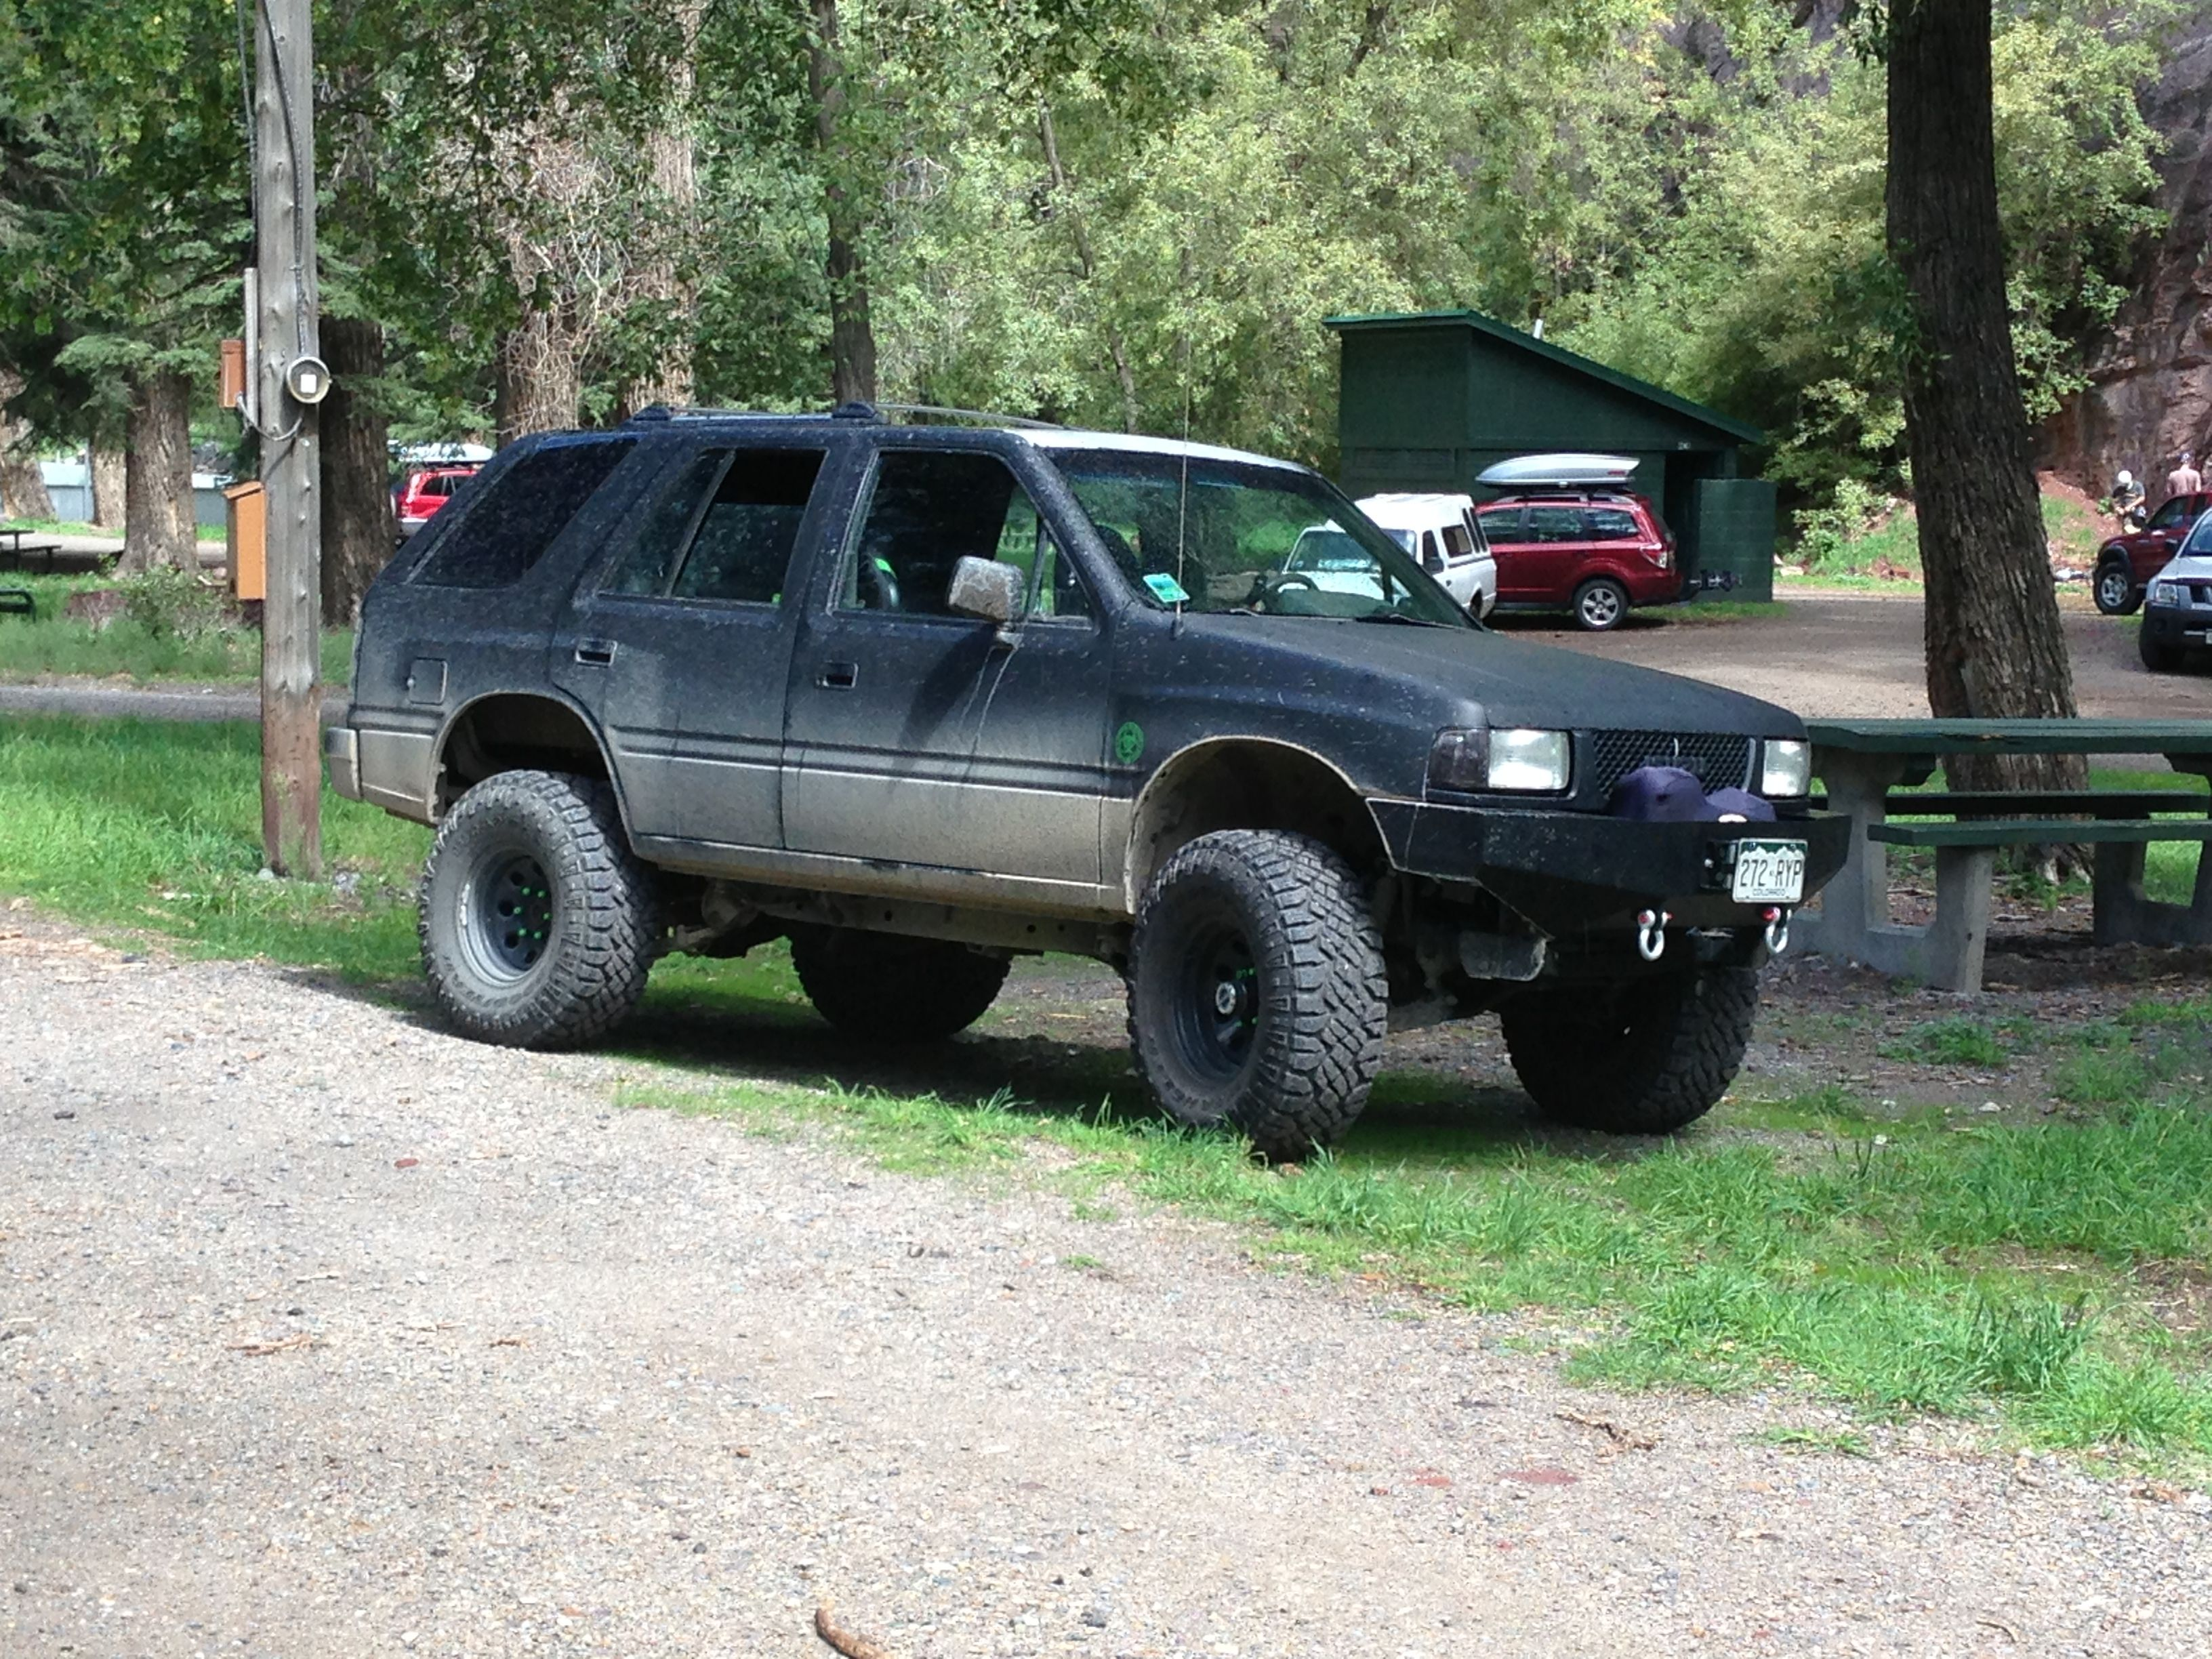 92 isuzu rodeo 6 lift 33 duratrac isuzu rodeo pinterest rodeo